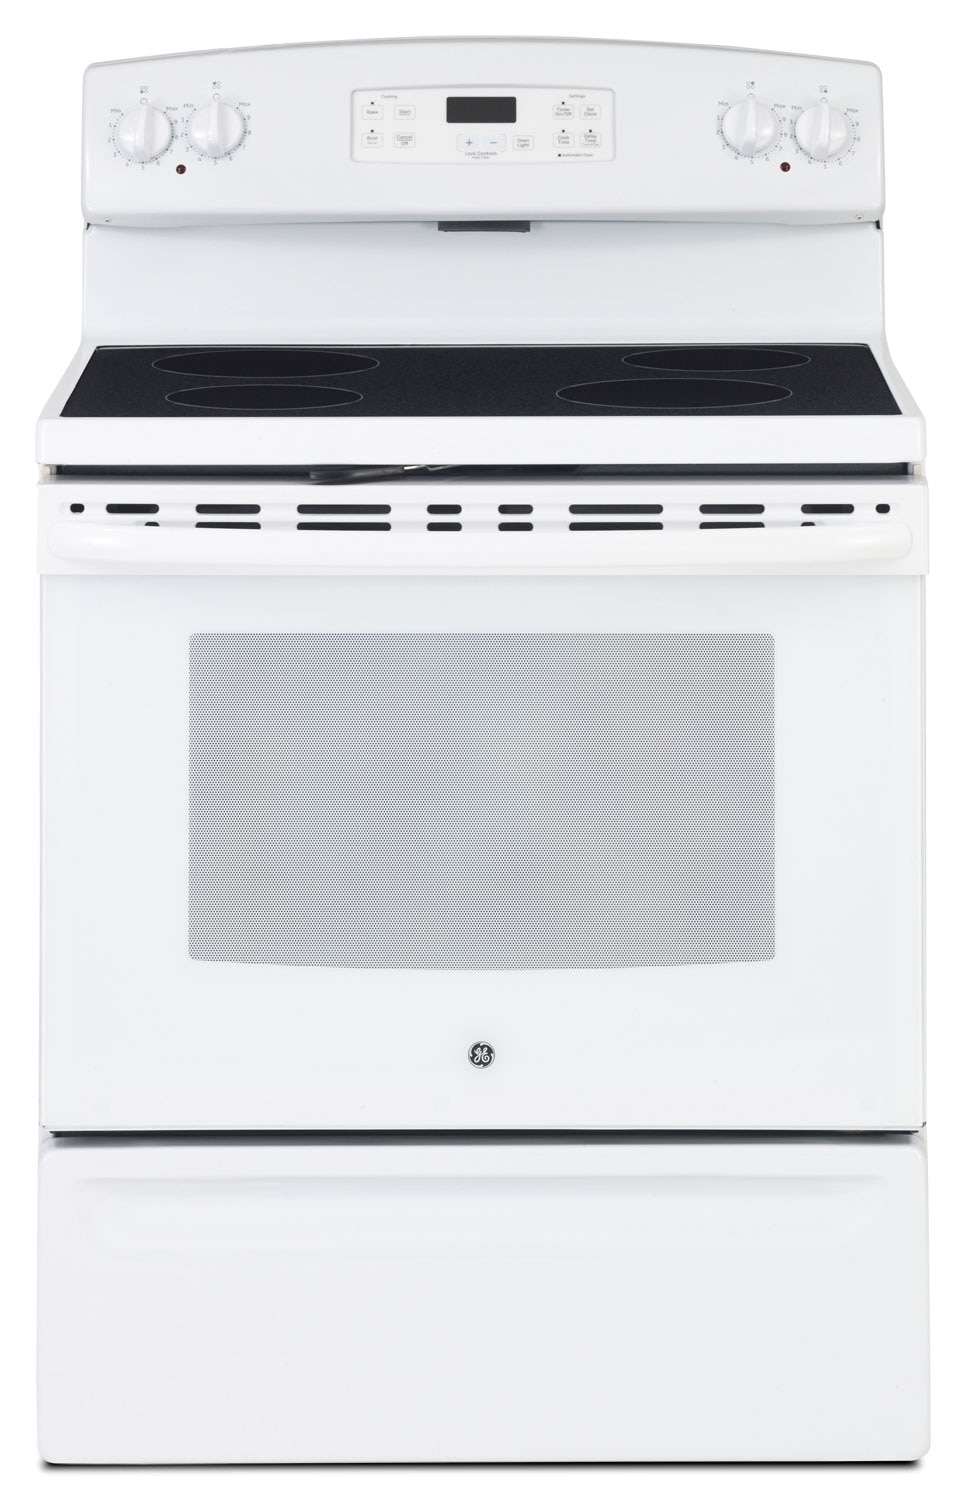 GE 5.0 Cu. Ft. Freestanding Smooth Top Electric Range - White